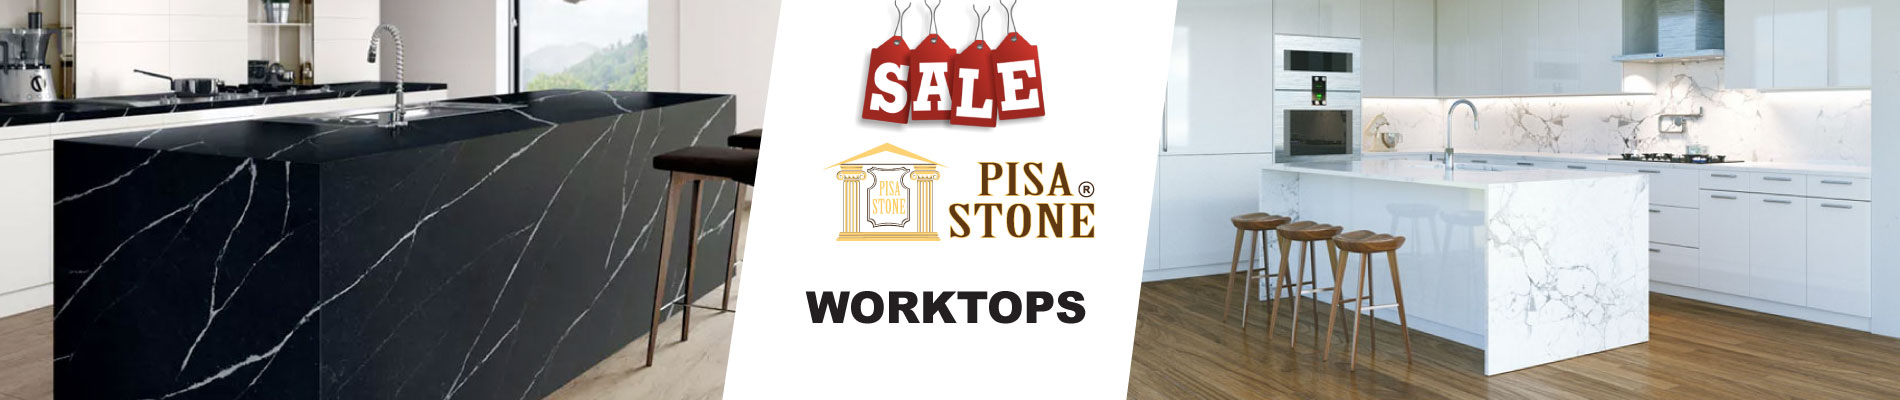 Worktops-Sale-Pisastone® | Pisa Stone® Natural Stone Supplier.